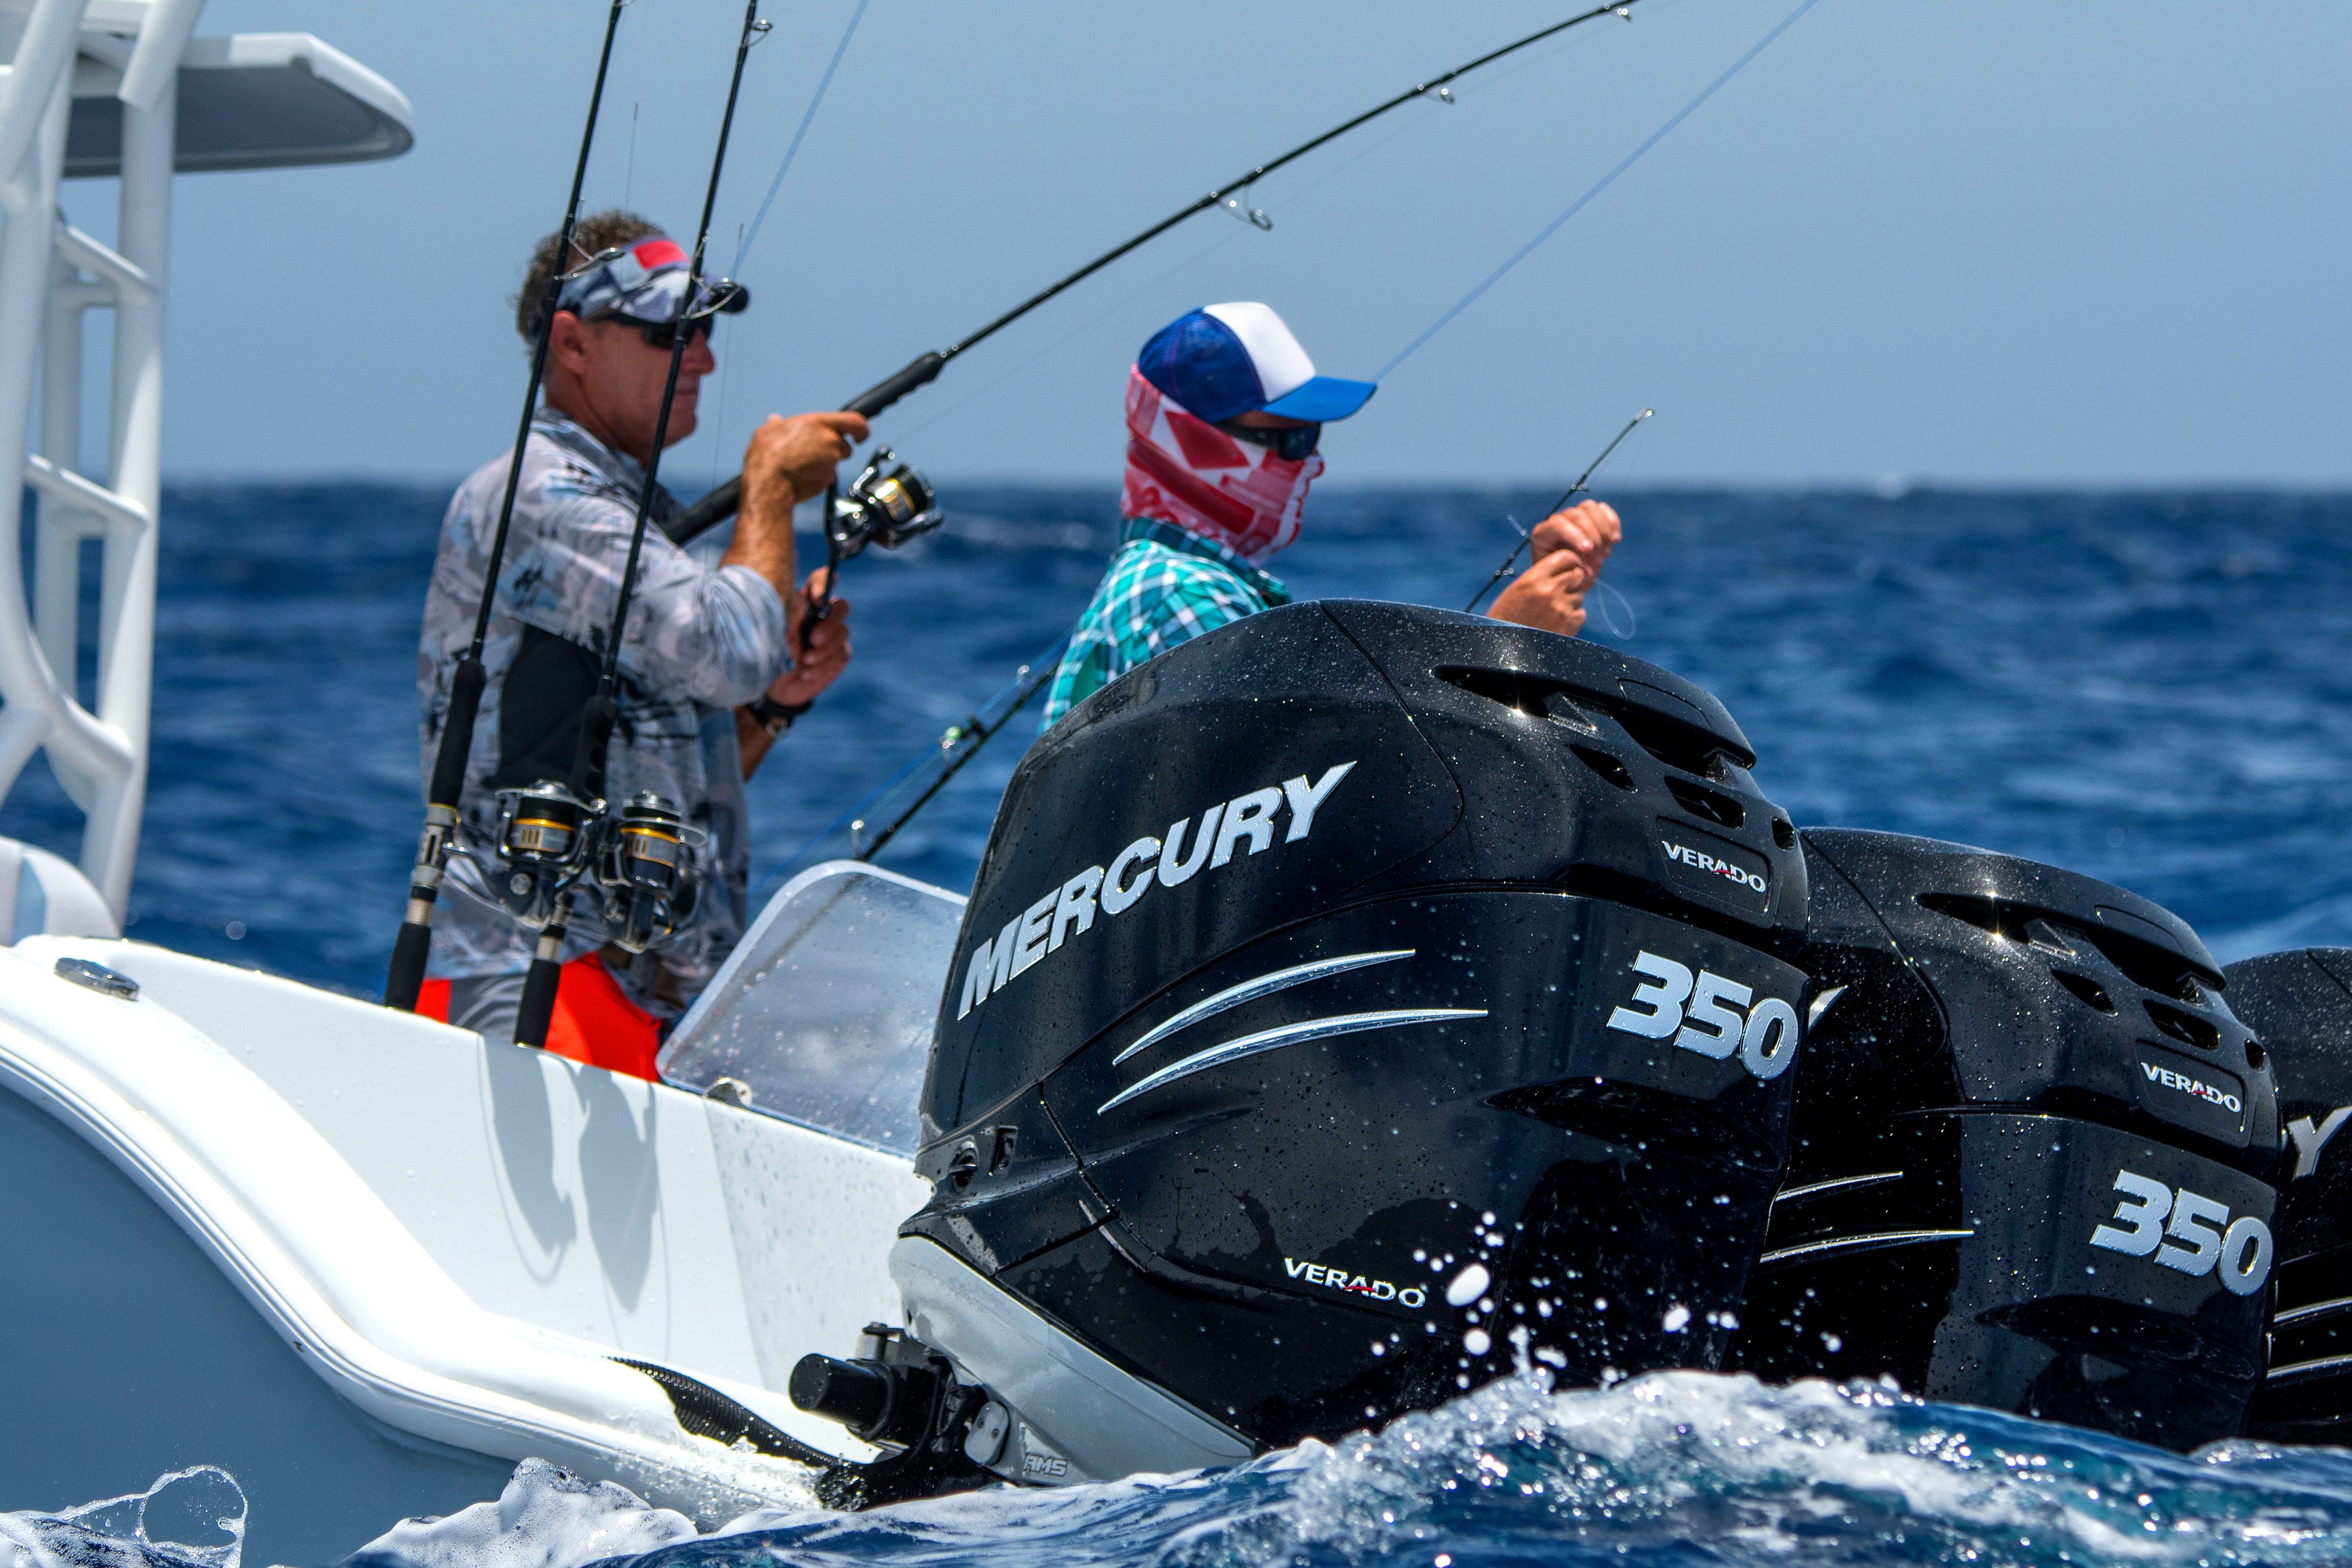 Mercury 350 outboards